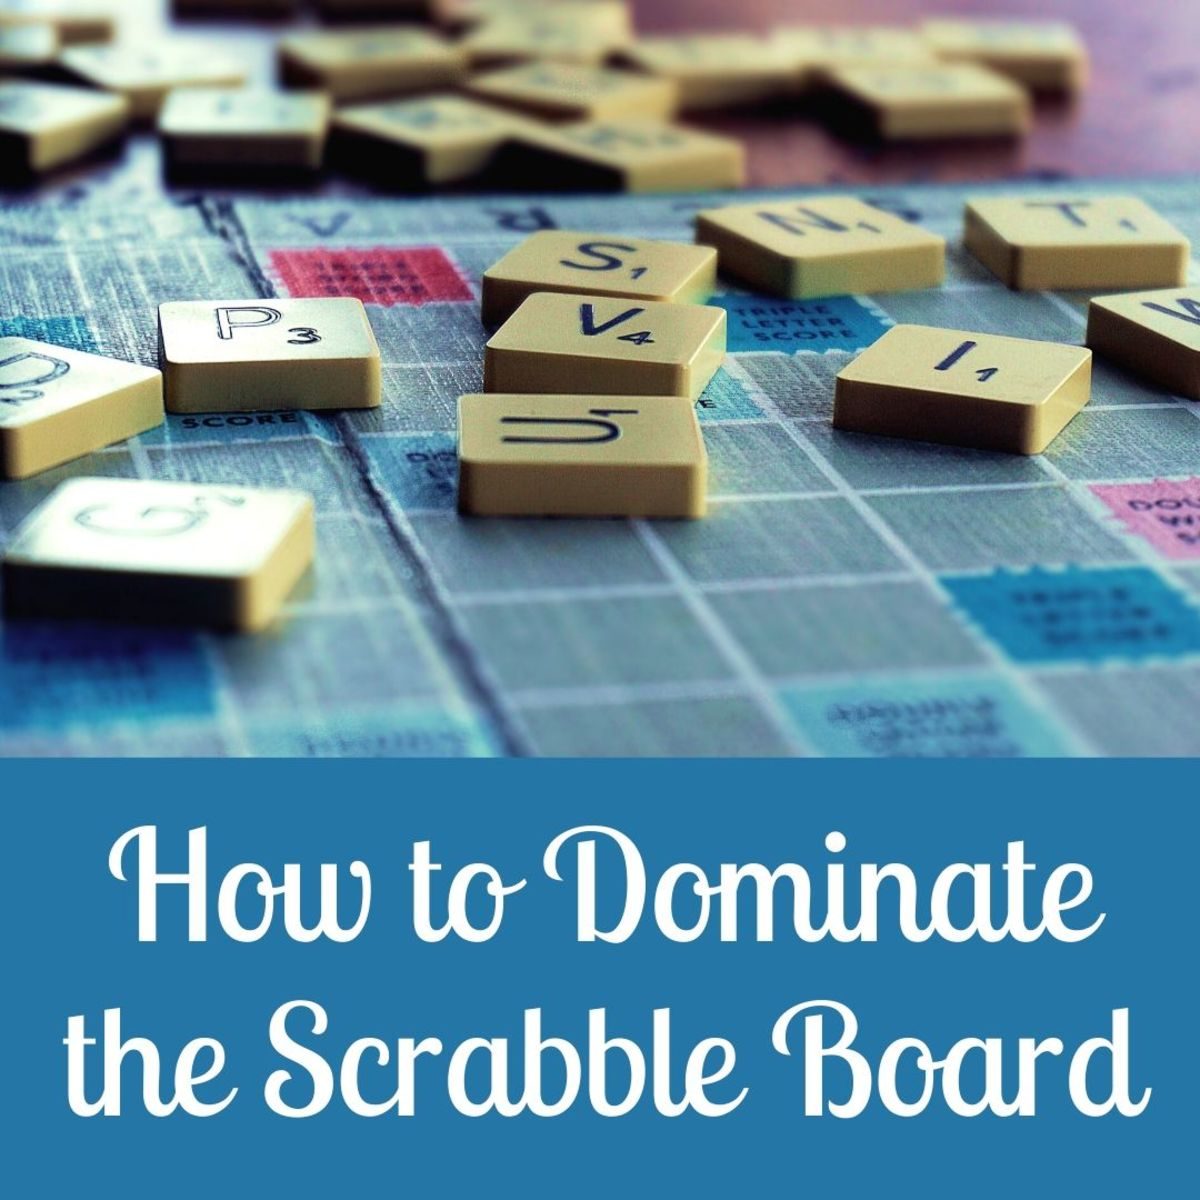 How to Dominate the Scrabble Board: Tips to Win Every Game